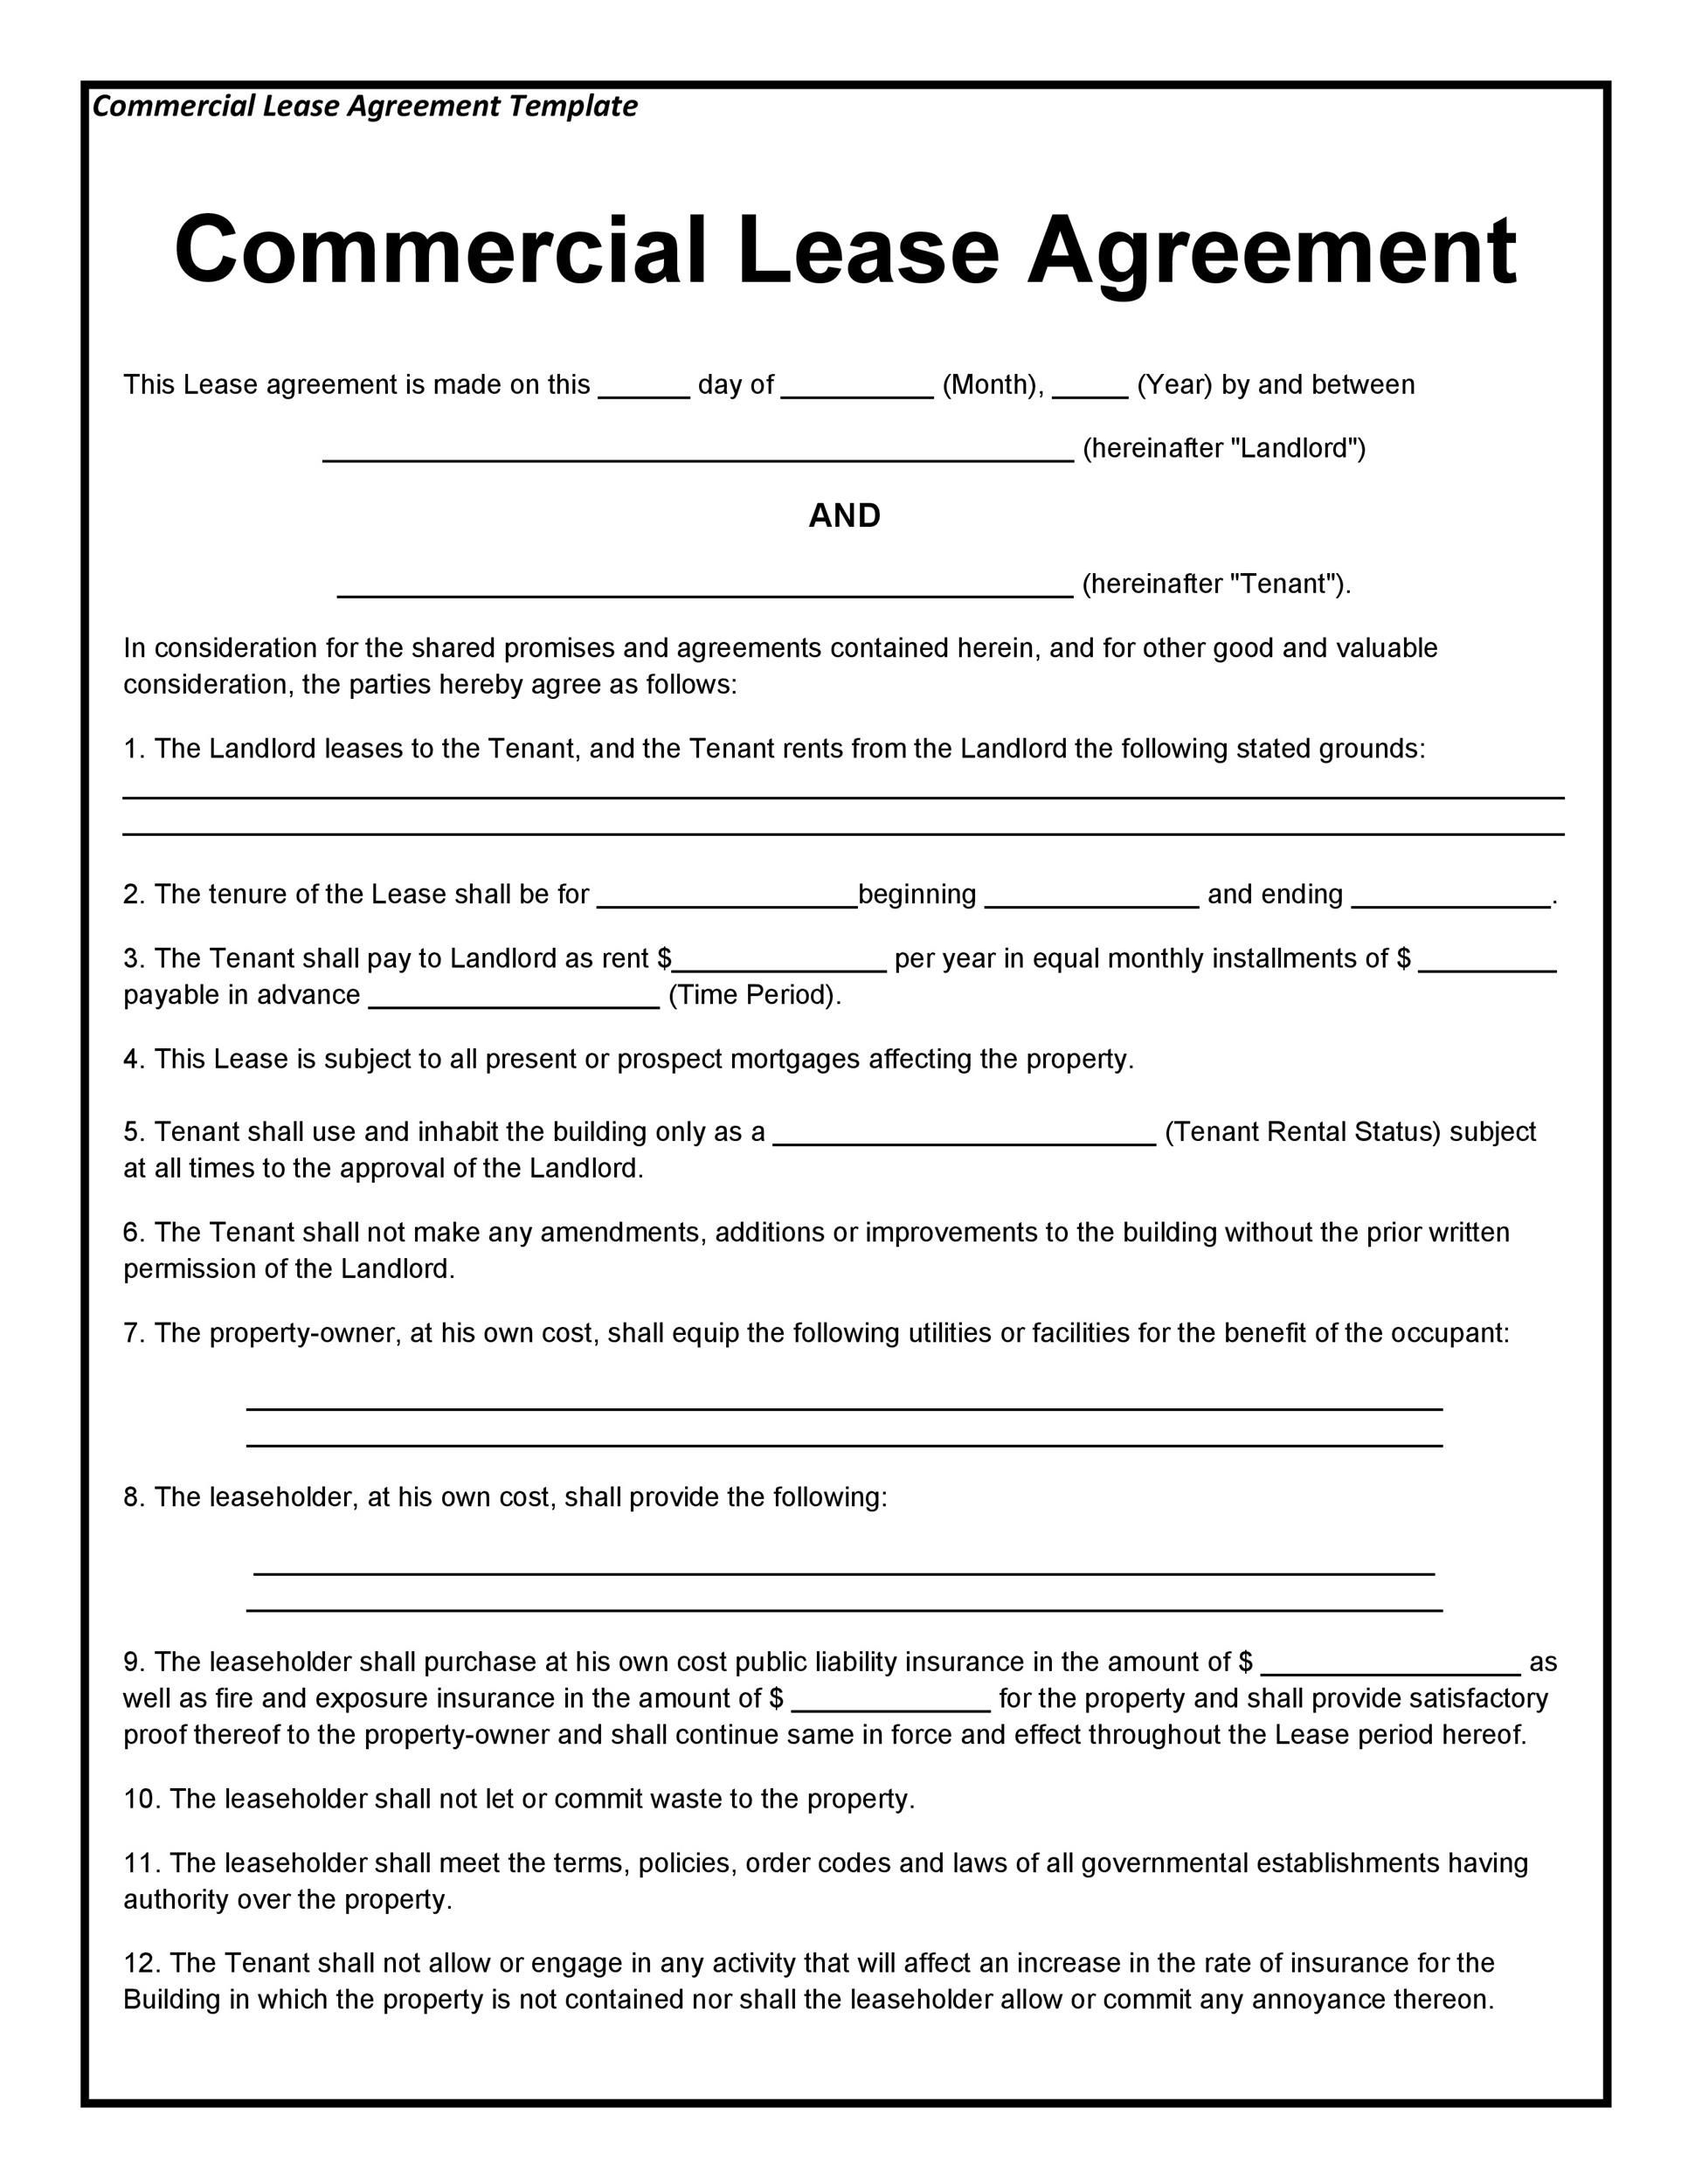 003 Remarkable Template For Home Rental Agreement Photo  House Rent